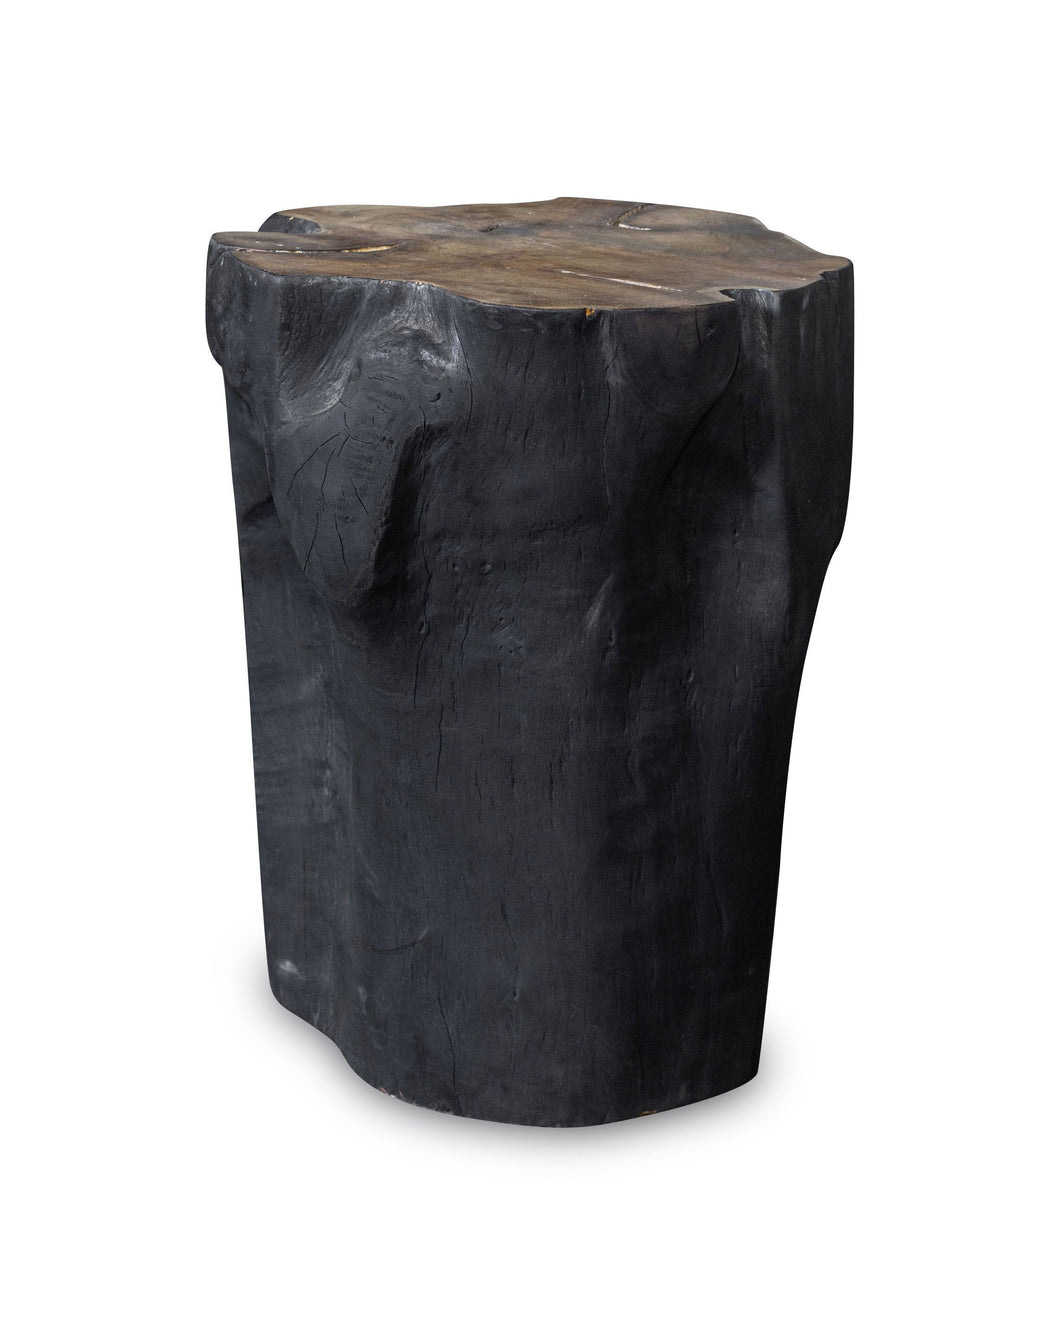 Solid Teak Wood Side Table, Natural Black Tree Stump Stool or End Table #19 (COMING IN THE END OF AUGUST)